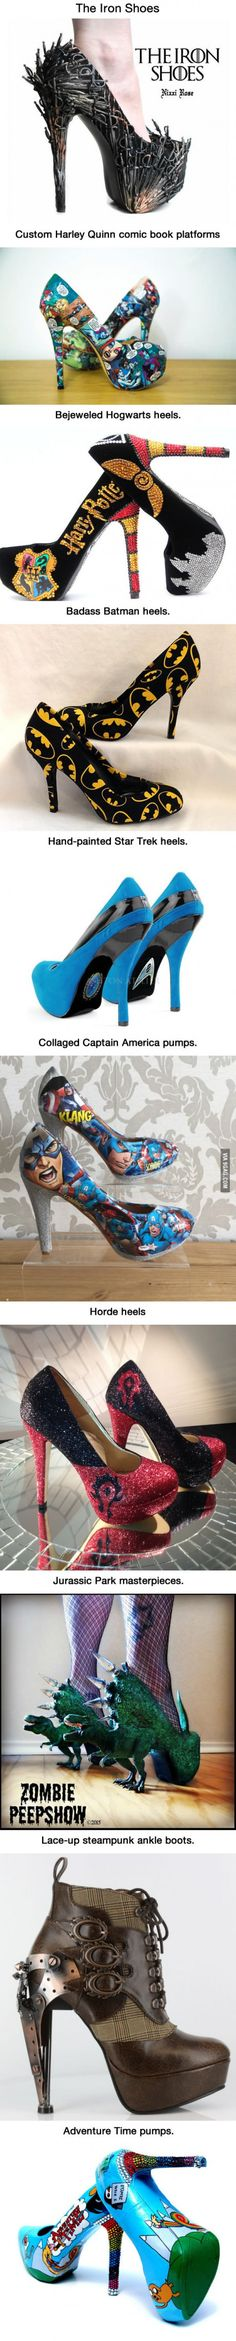 Geeky High Heels That Are Awesome